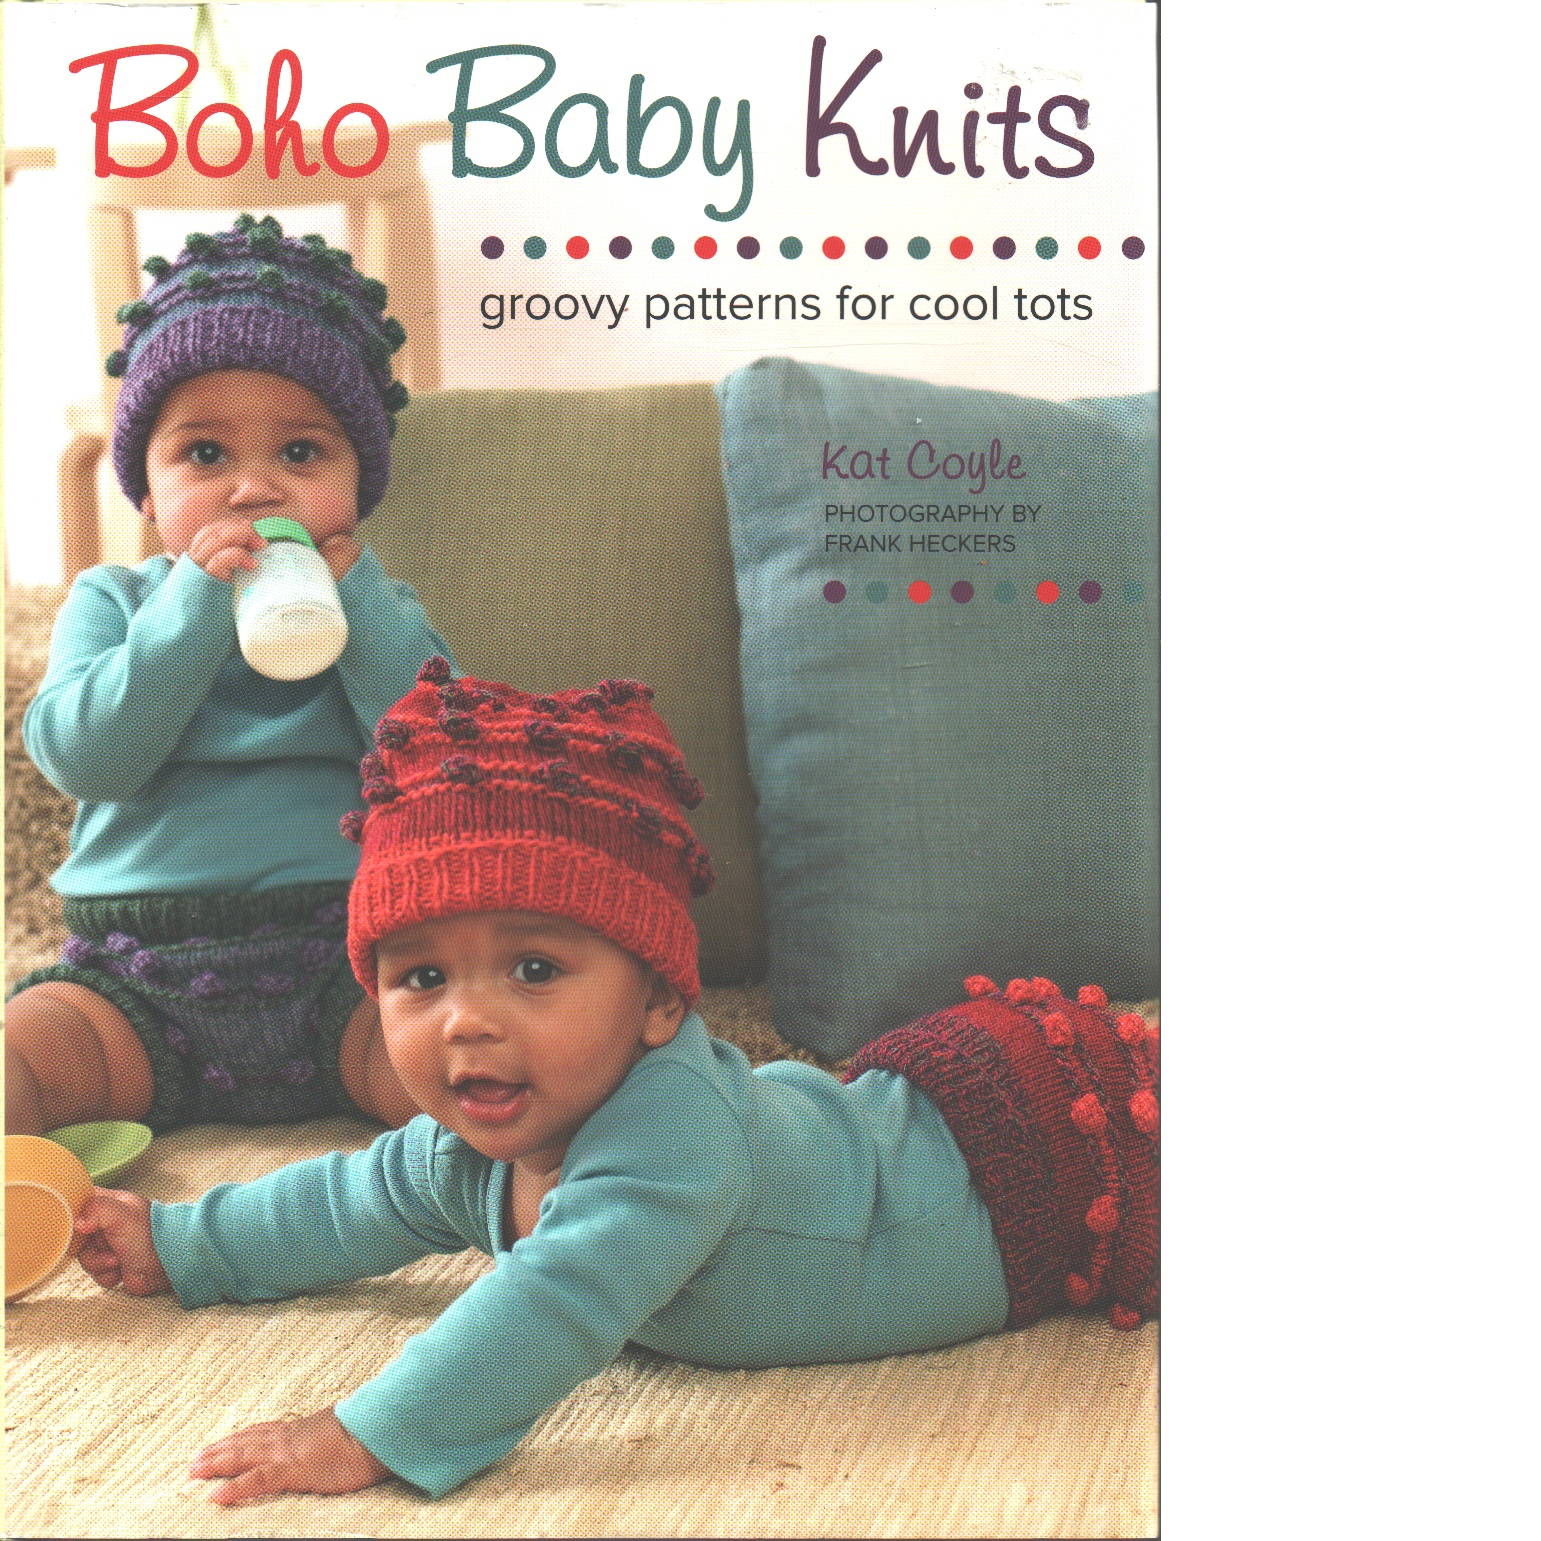 Boho Baby Knits: Groovy Patterns for Cool Tots - Cole,Kat and Heckers,Frank